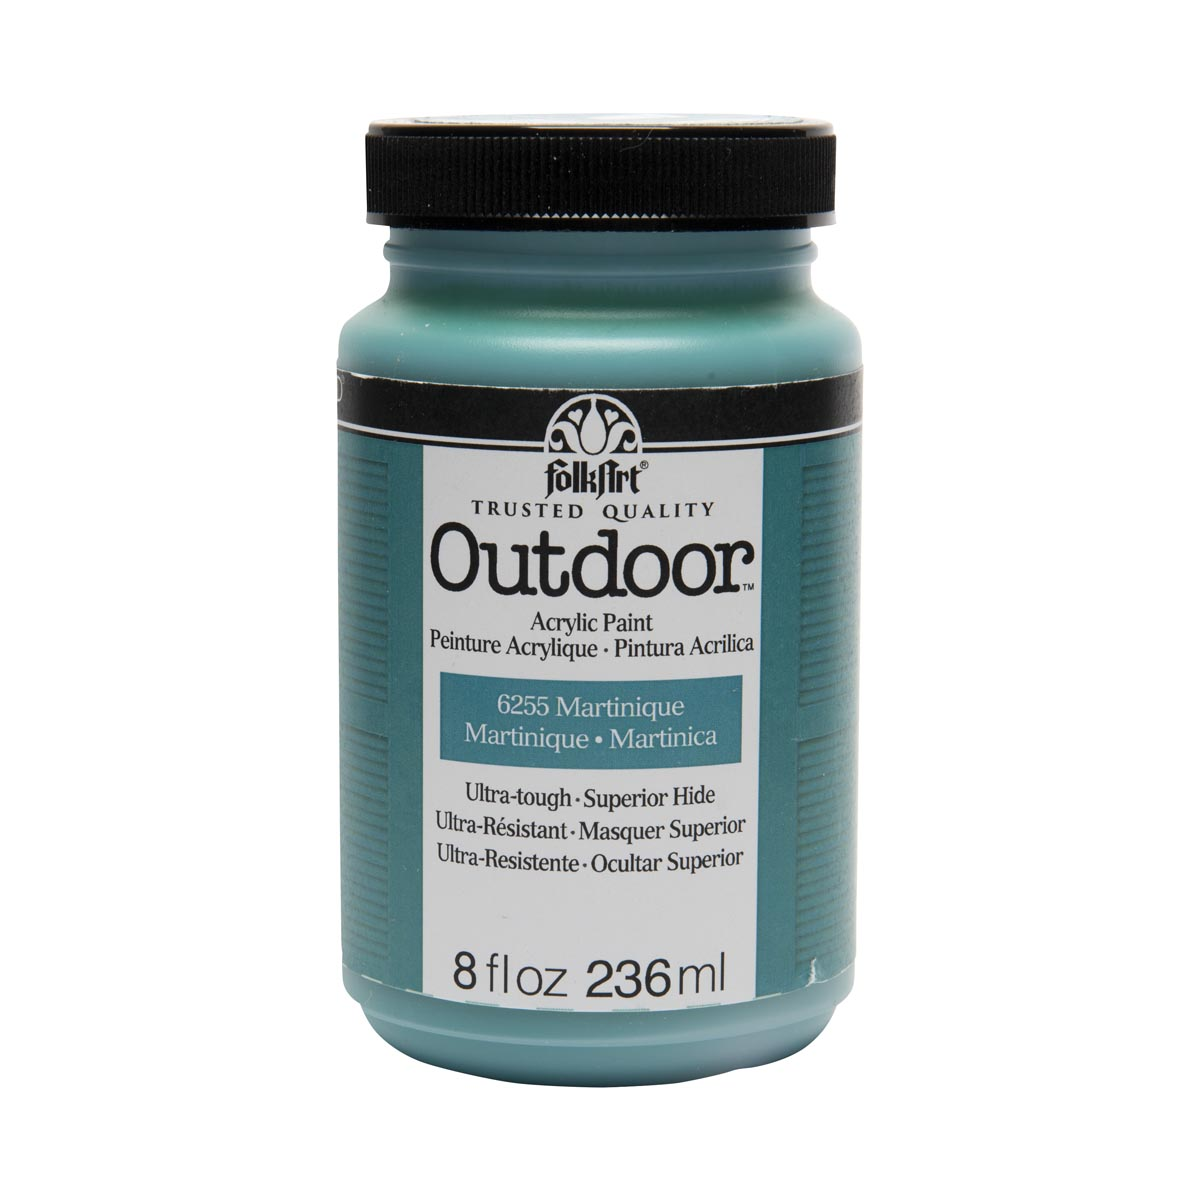 FolkArt ® Outdoor™ Acrylic Colors - Martinique, 8 oz.